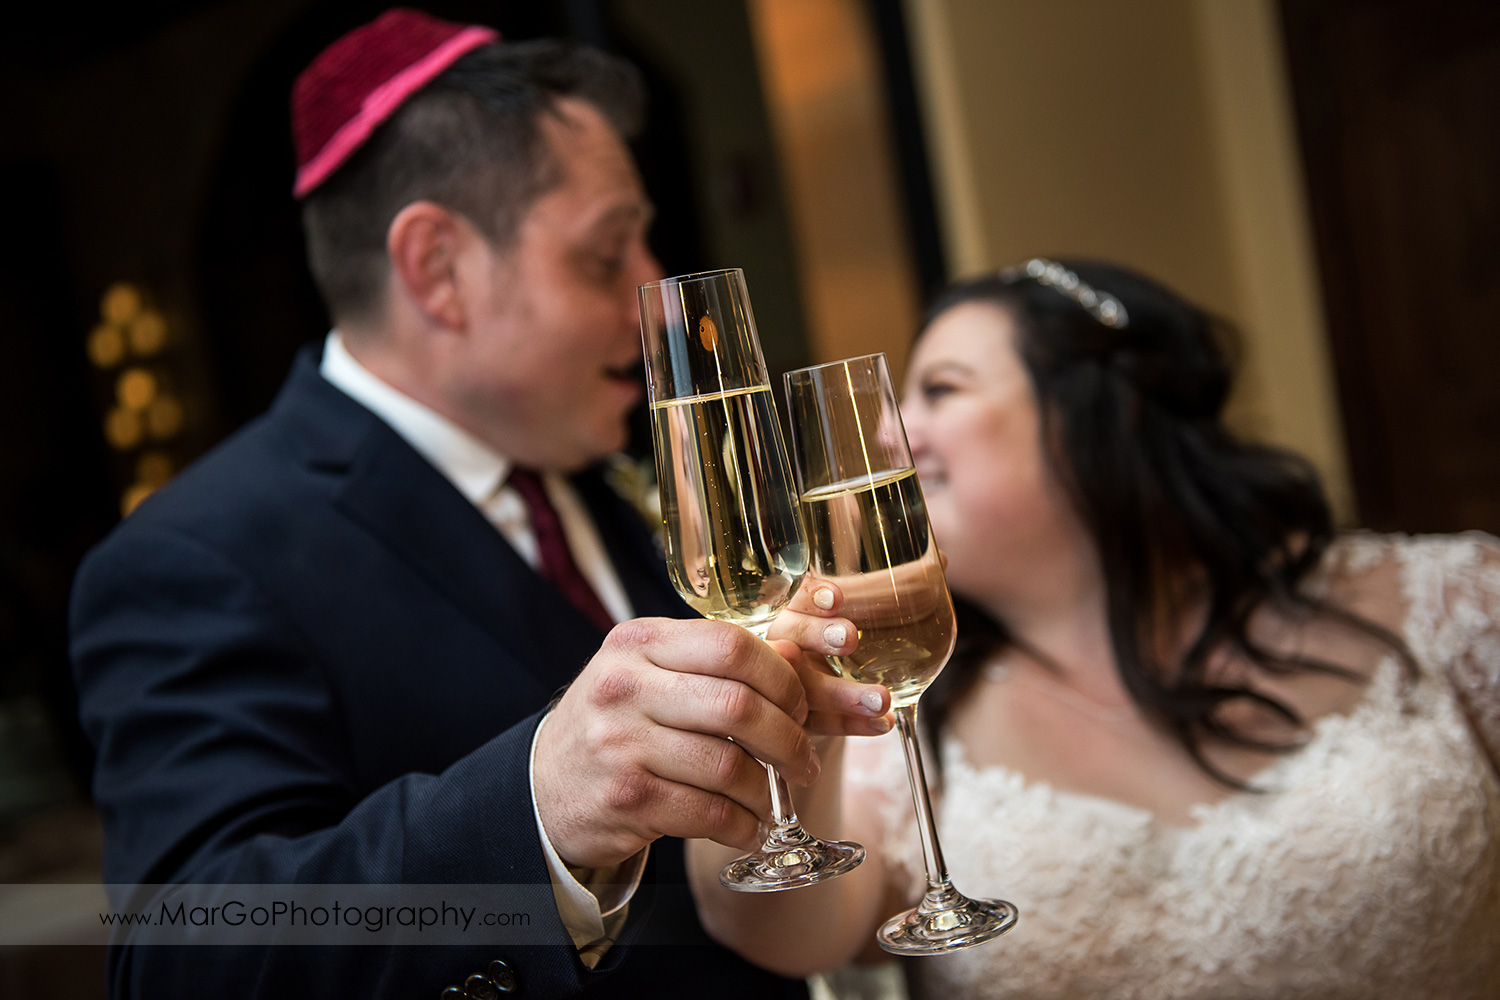 jewish bride and groom holding champagne glasses during wedding reception at Livermore Garre Vineyard and Winery